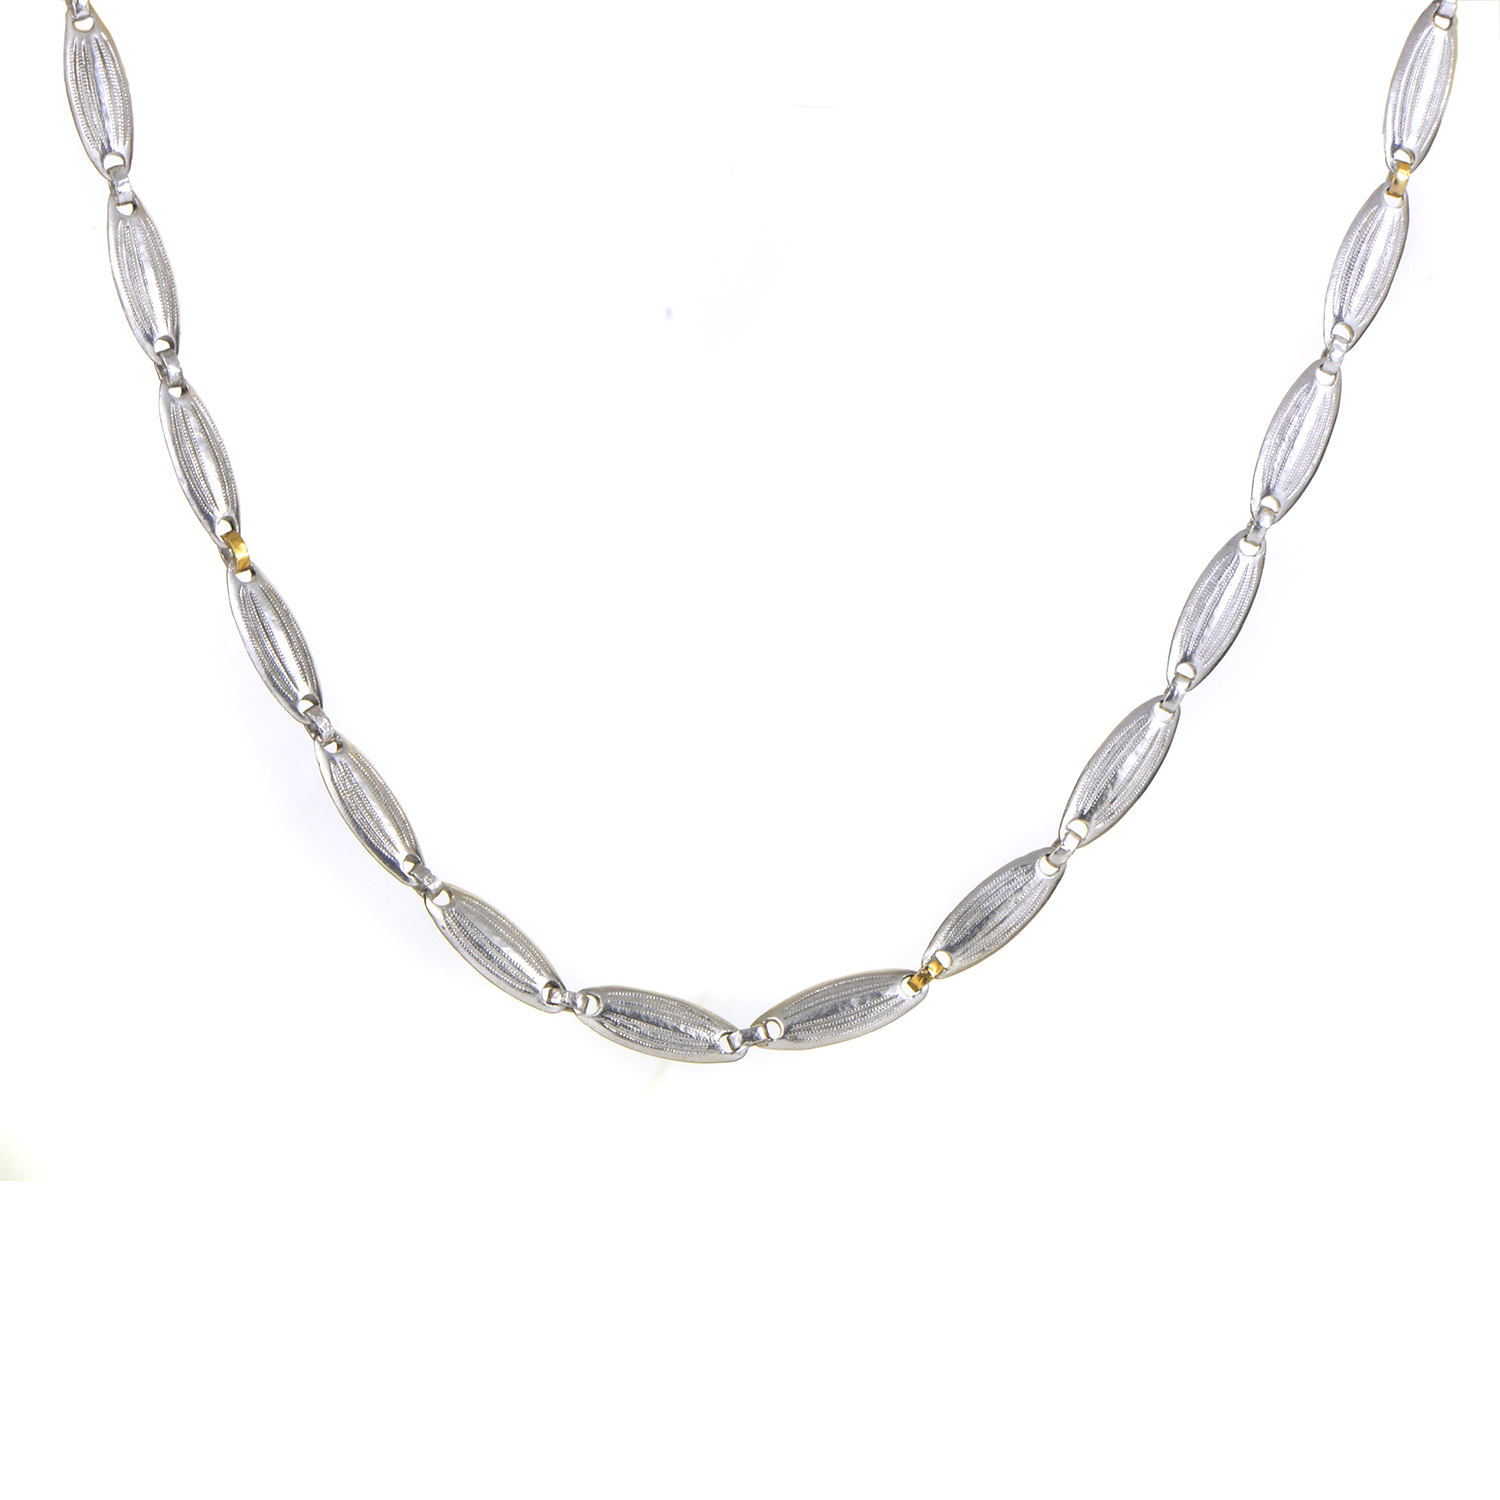 Orb Women's Sterling Silver & 24K Yellow Gold Long Necklace